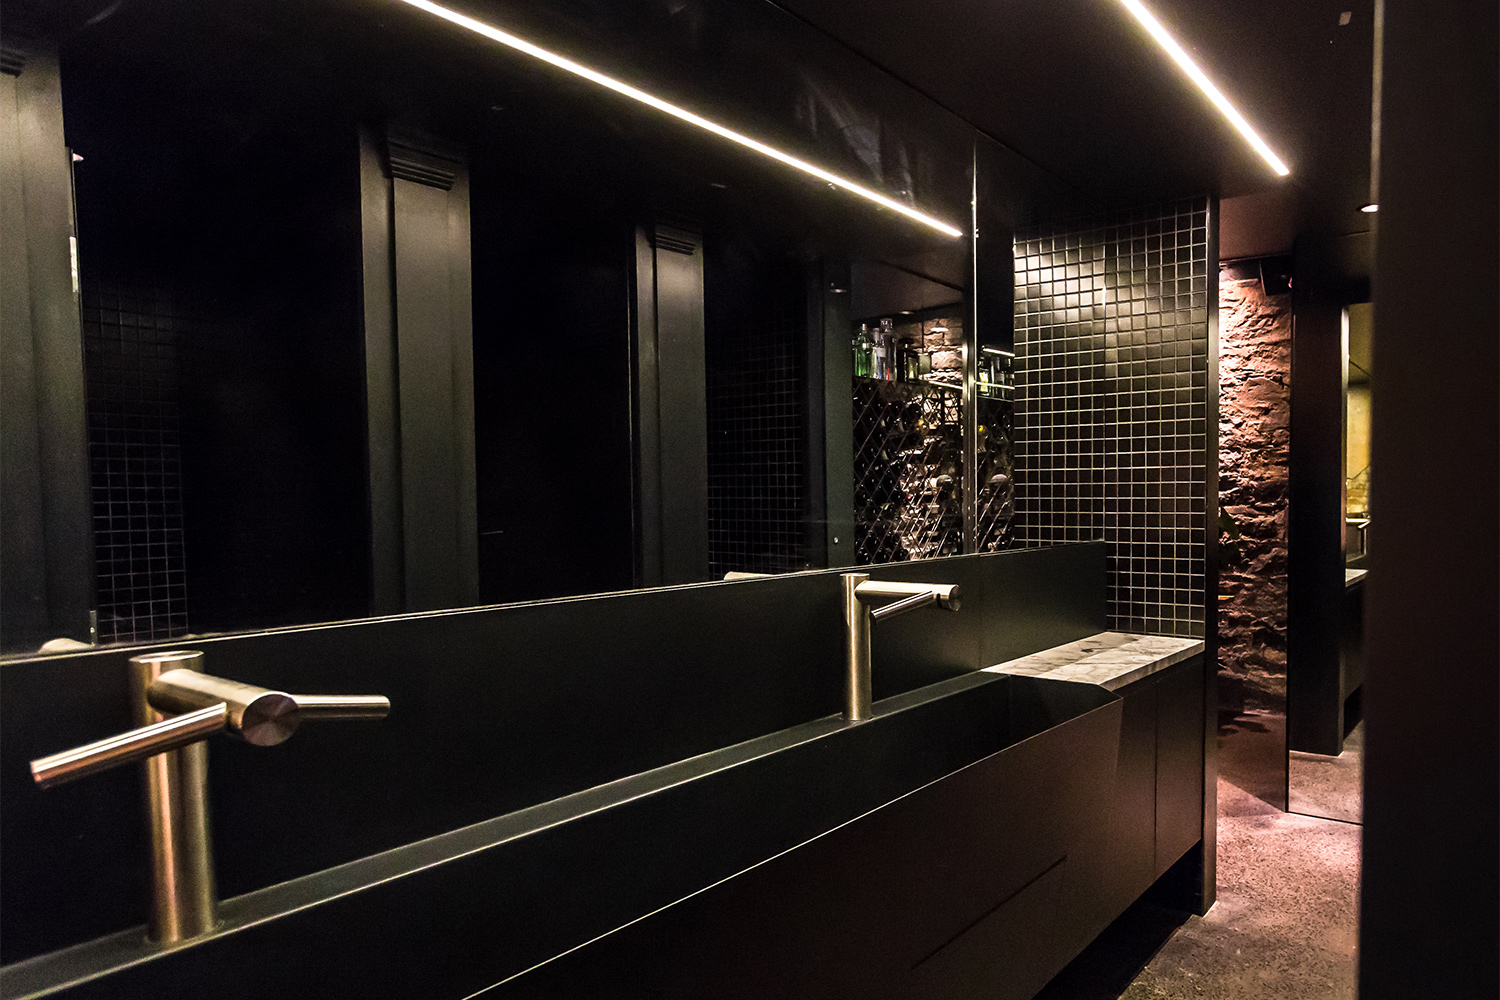 Black commercial bathroom. Automatic faucets installed on the washbasin made to measure in black finish metal. A large mirror with a black mosaic section gives us a glimpse of the cabins